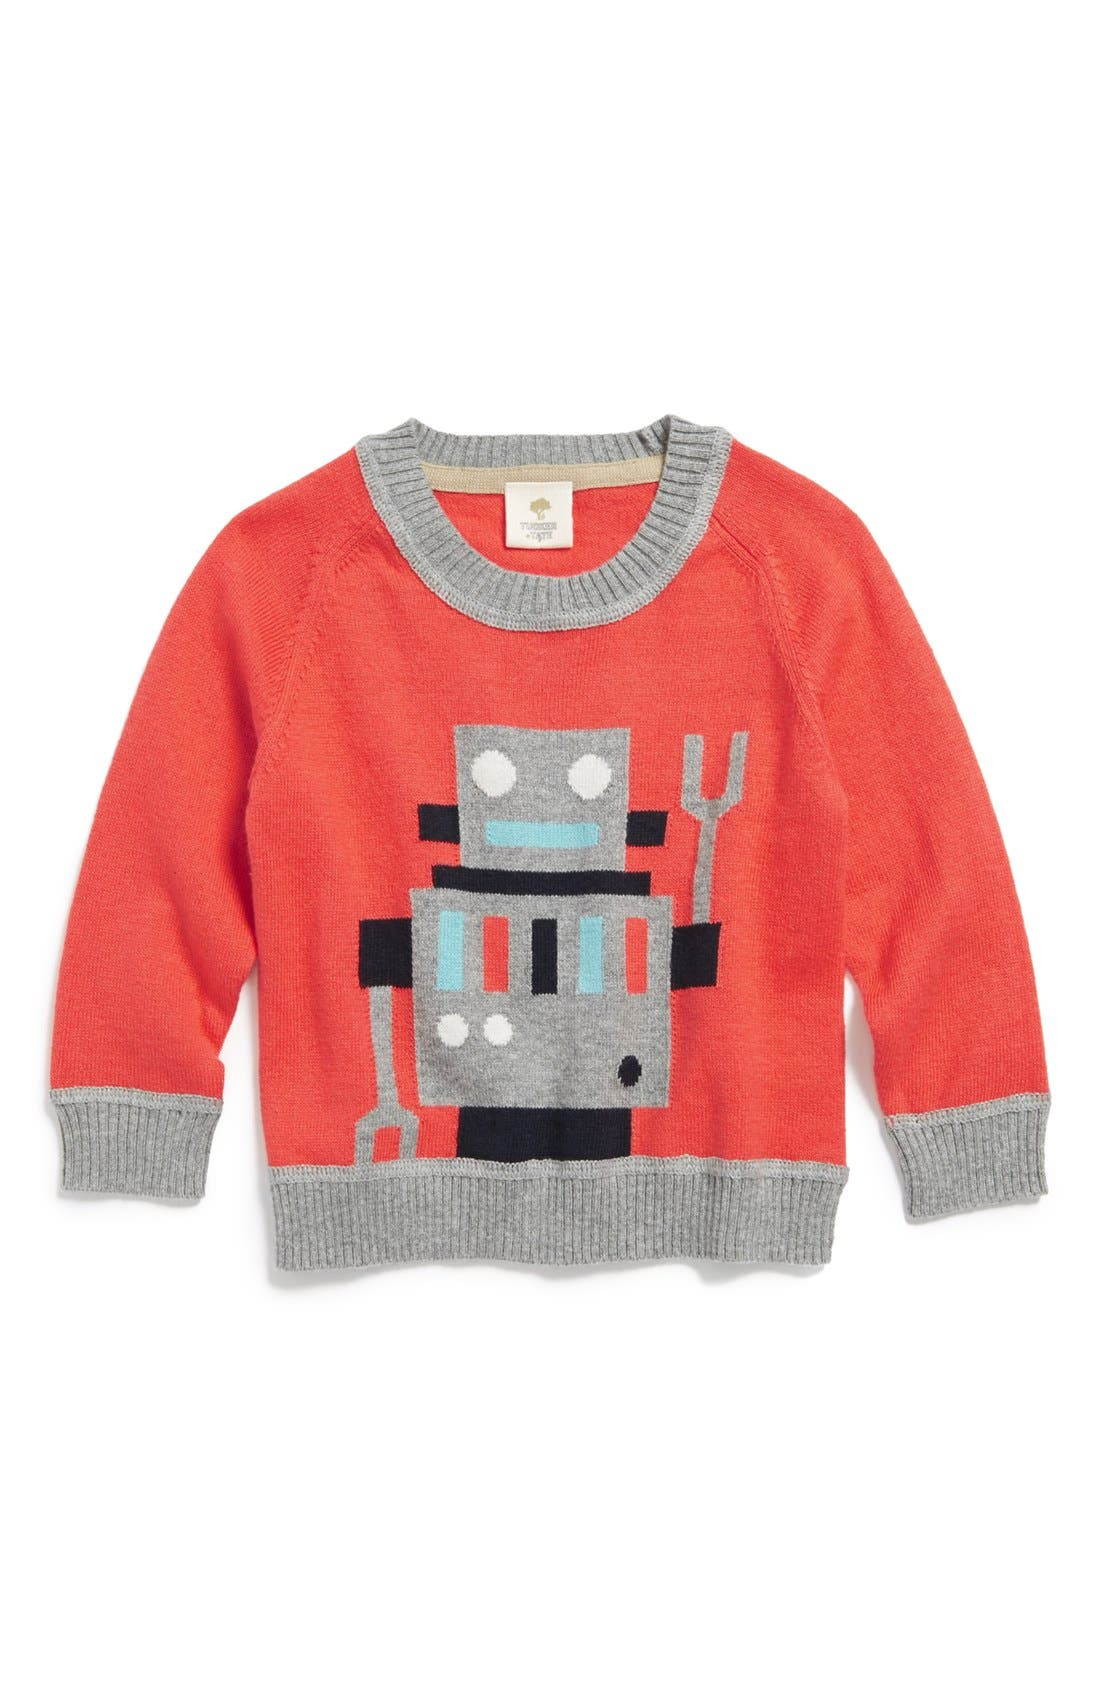 Main Image - Tucker + Tate Knit Cotton & Cashmere Crewneck Sweater (Baby Boys)